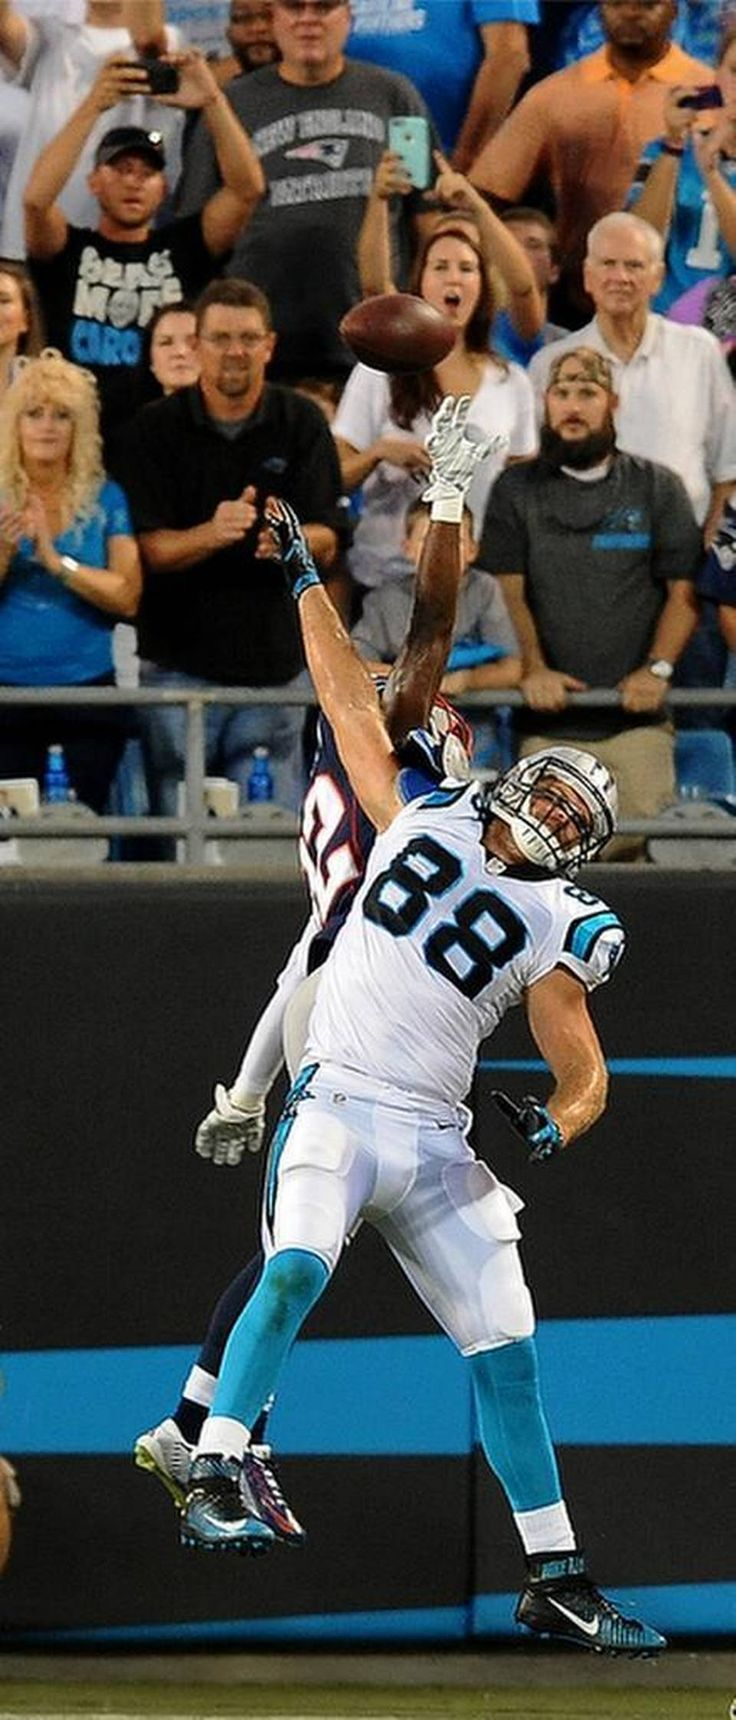 Carolina Panthers tight end Greg Olsen is unable to make a reception of a pass from quarterback Cam Newton in the red zone as New England Patriots defensive back Devin McCourty applies defensive pressure during first quarter action at Bank of America Stadium in Charlotte, NC on Friday, August 28, 2015.